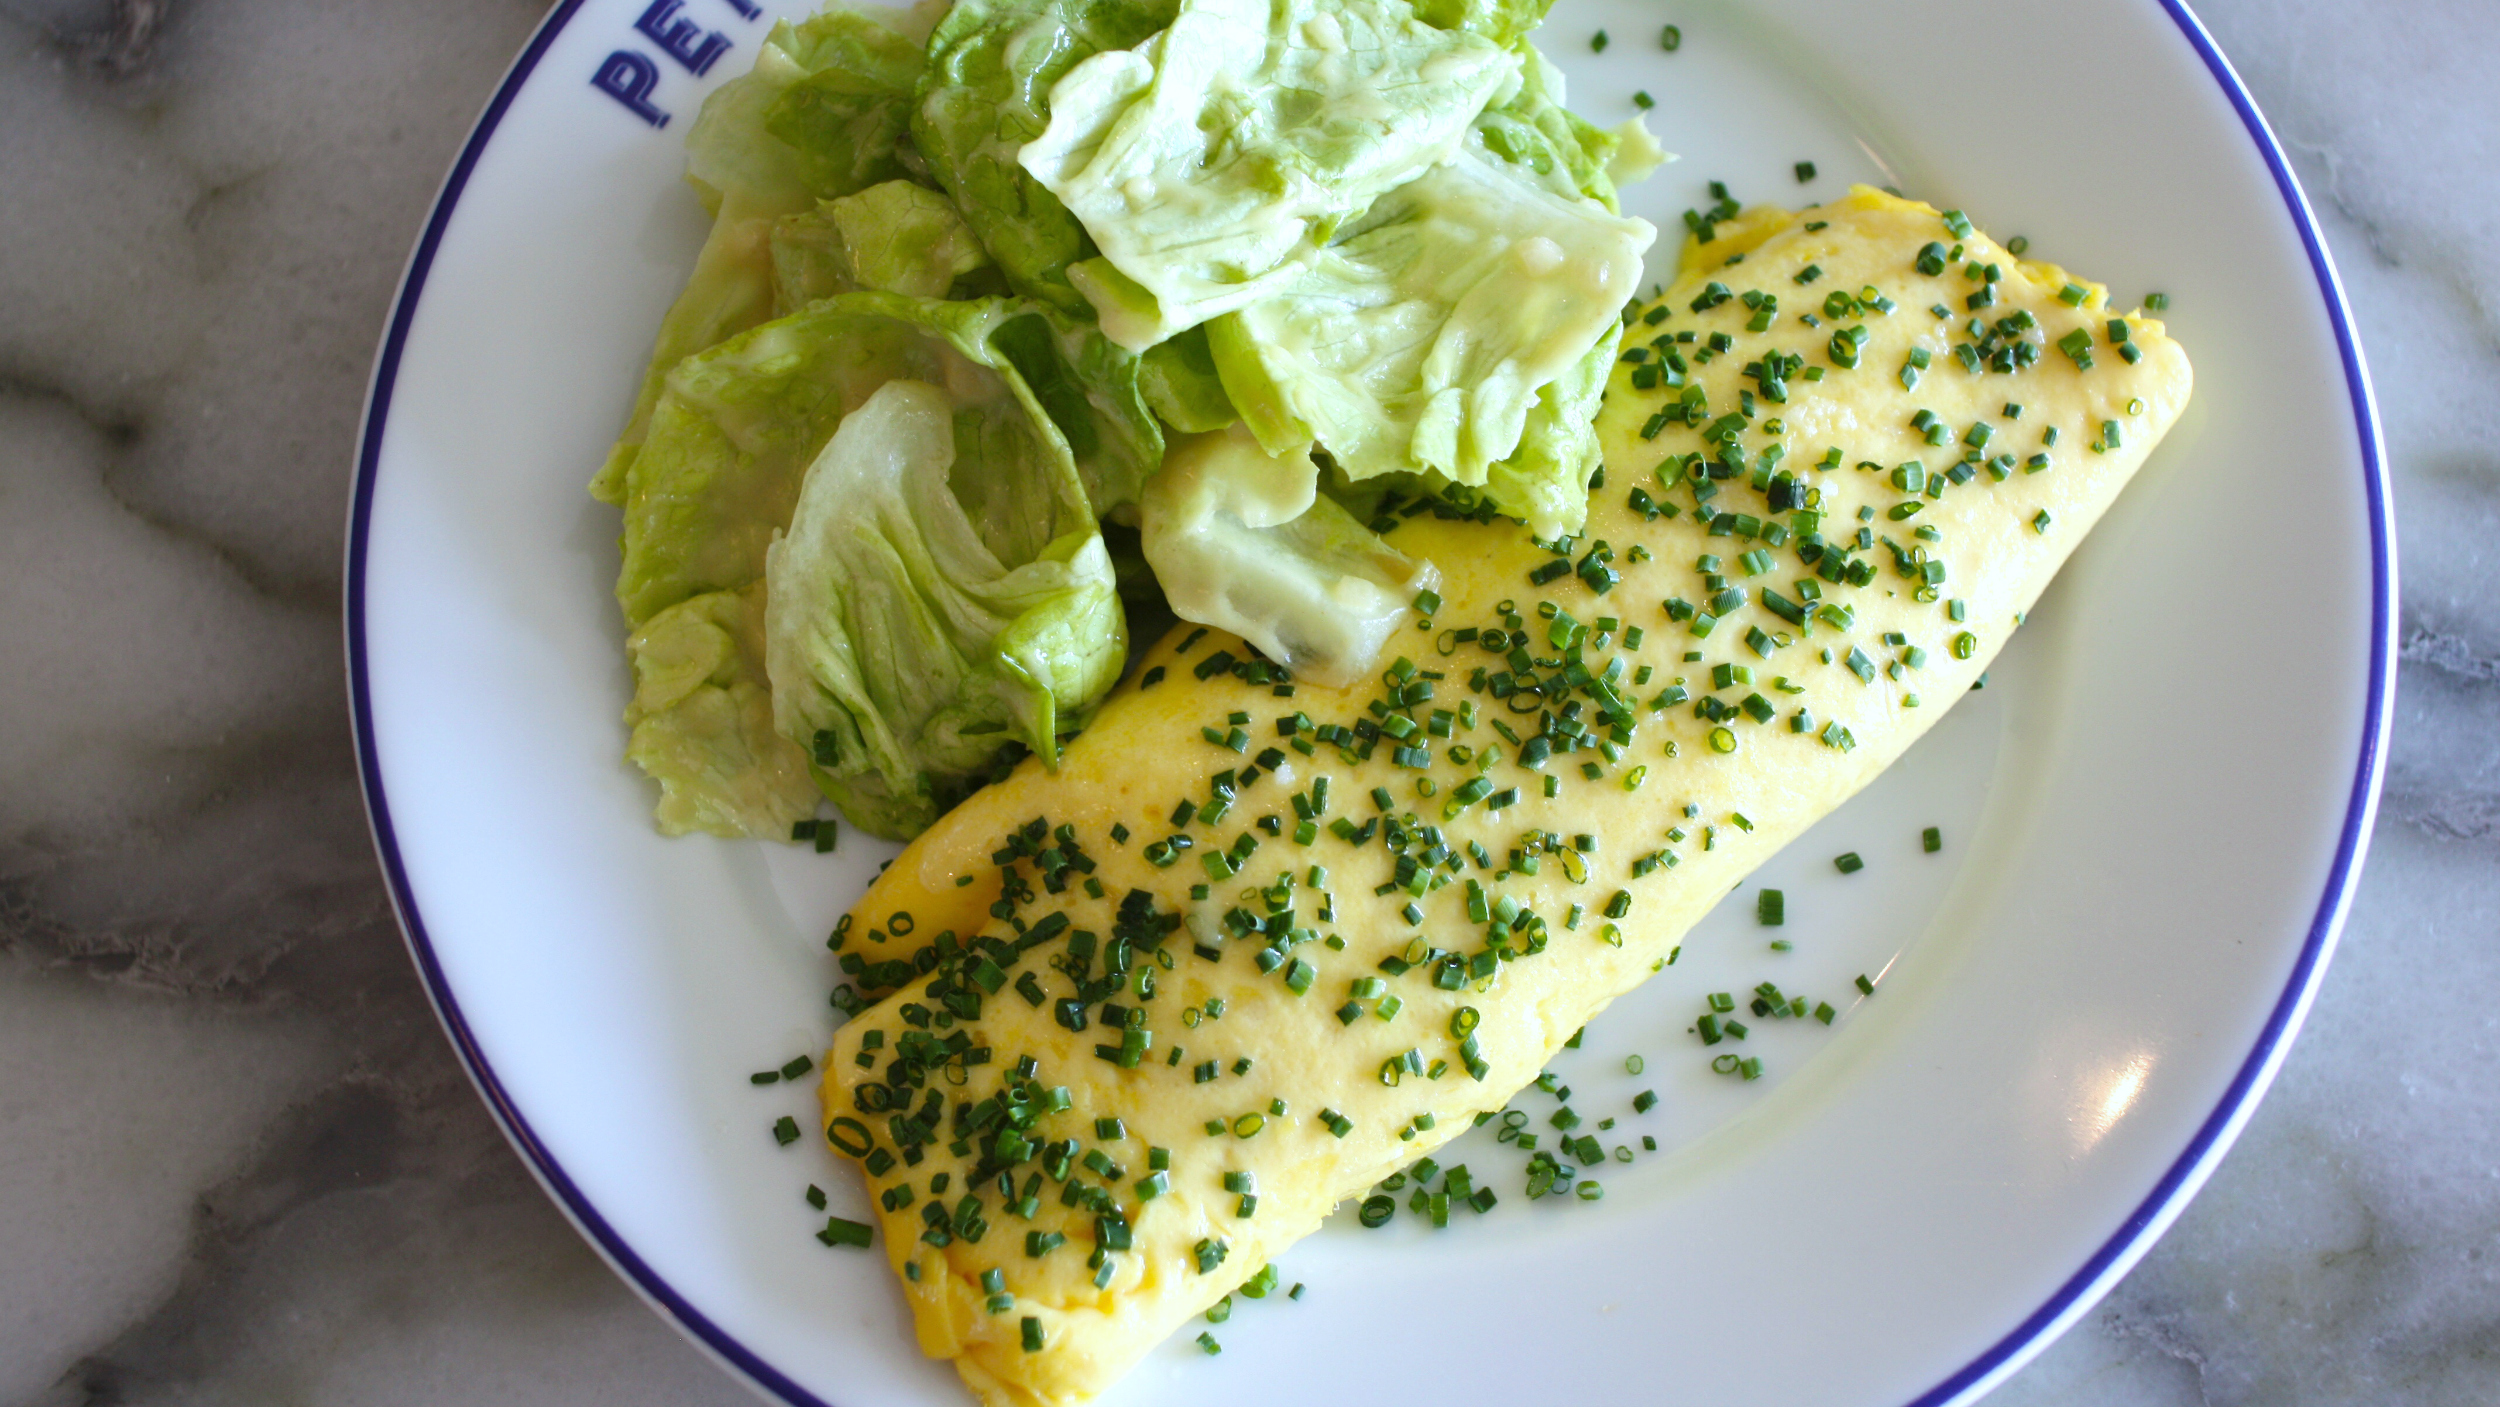 Ludo Lefebvre S Perfect French Omelet Today Com